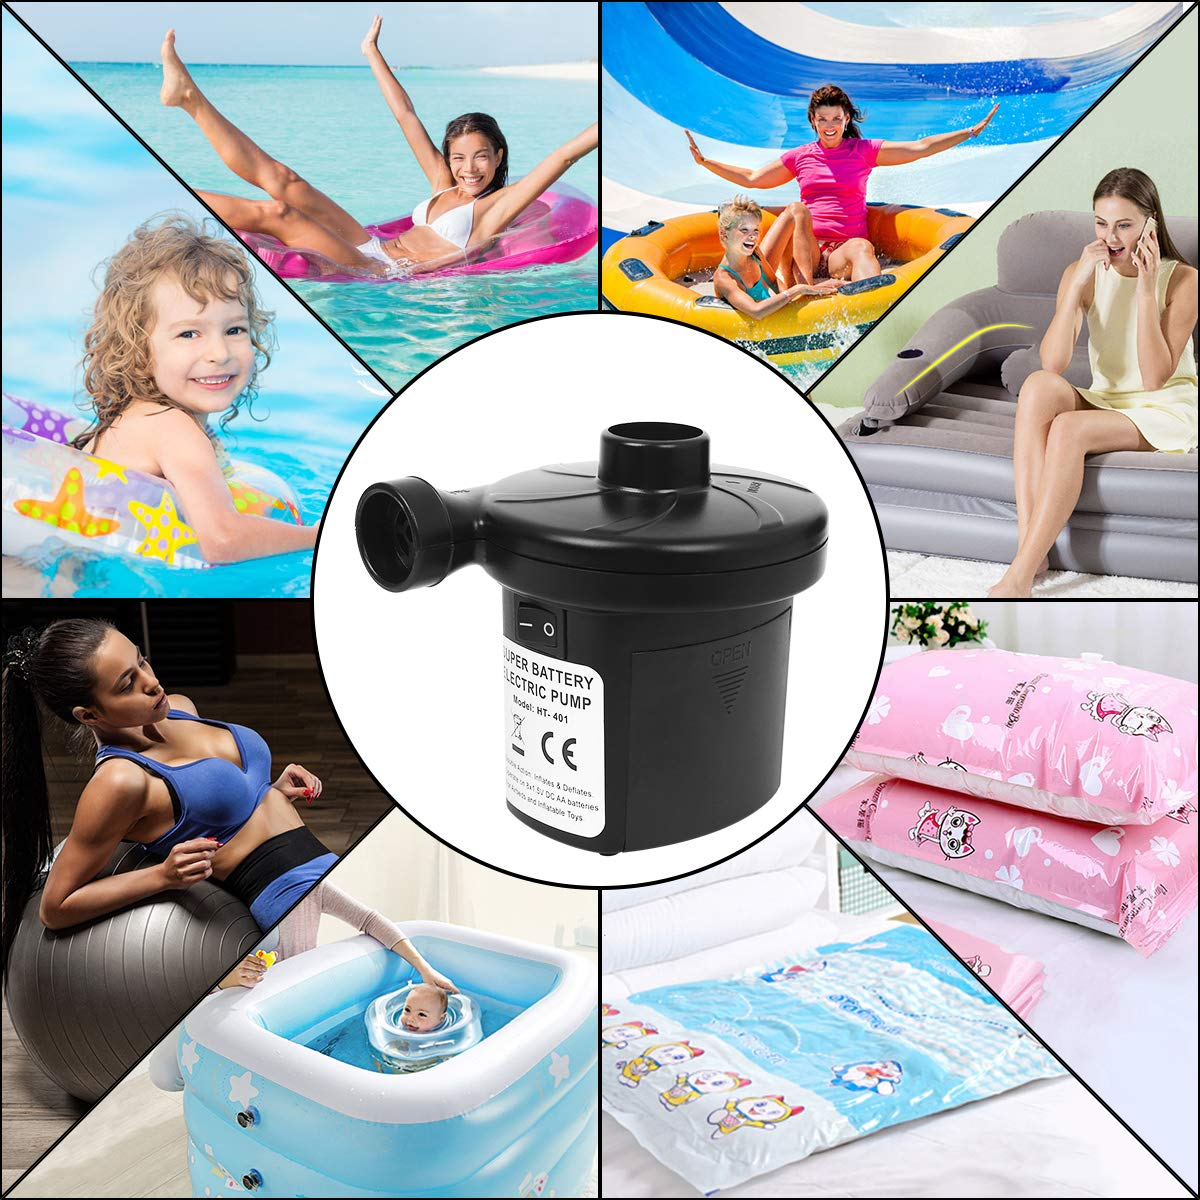 Electric Quick-Fill Blower Portable Inflator Deflator for Inflatables Raft Bed Boat Pool Toy sanipoe Battery Powered Air Mattress Pump Black